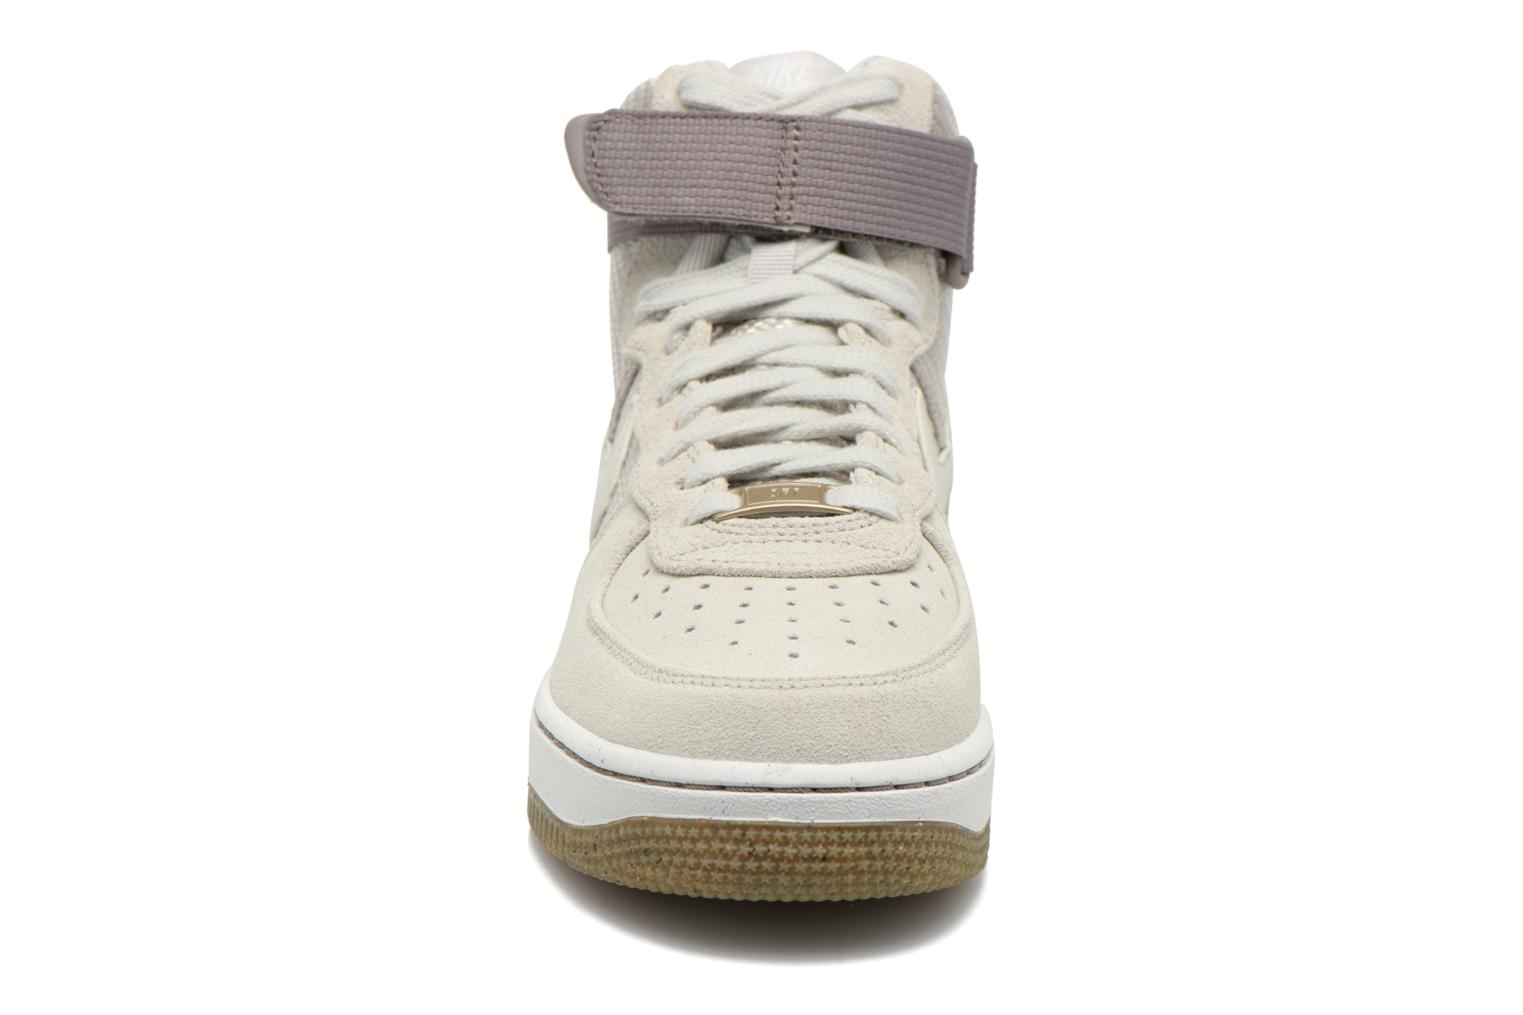 Wmns Air Force 1 Hi Prm Light Bone/Light Bone